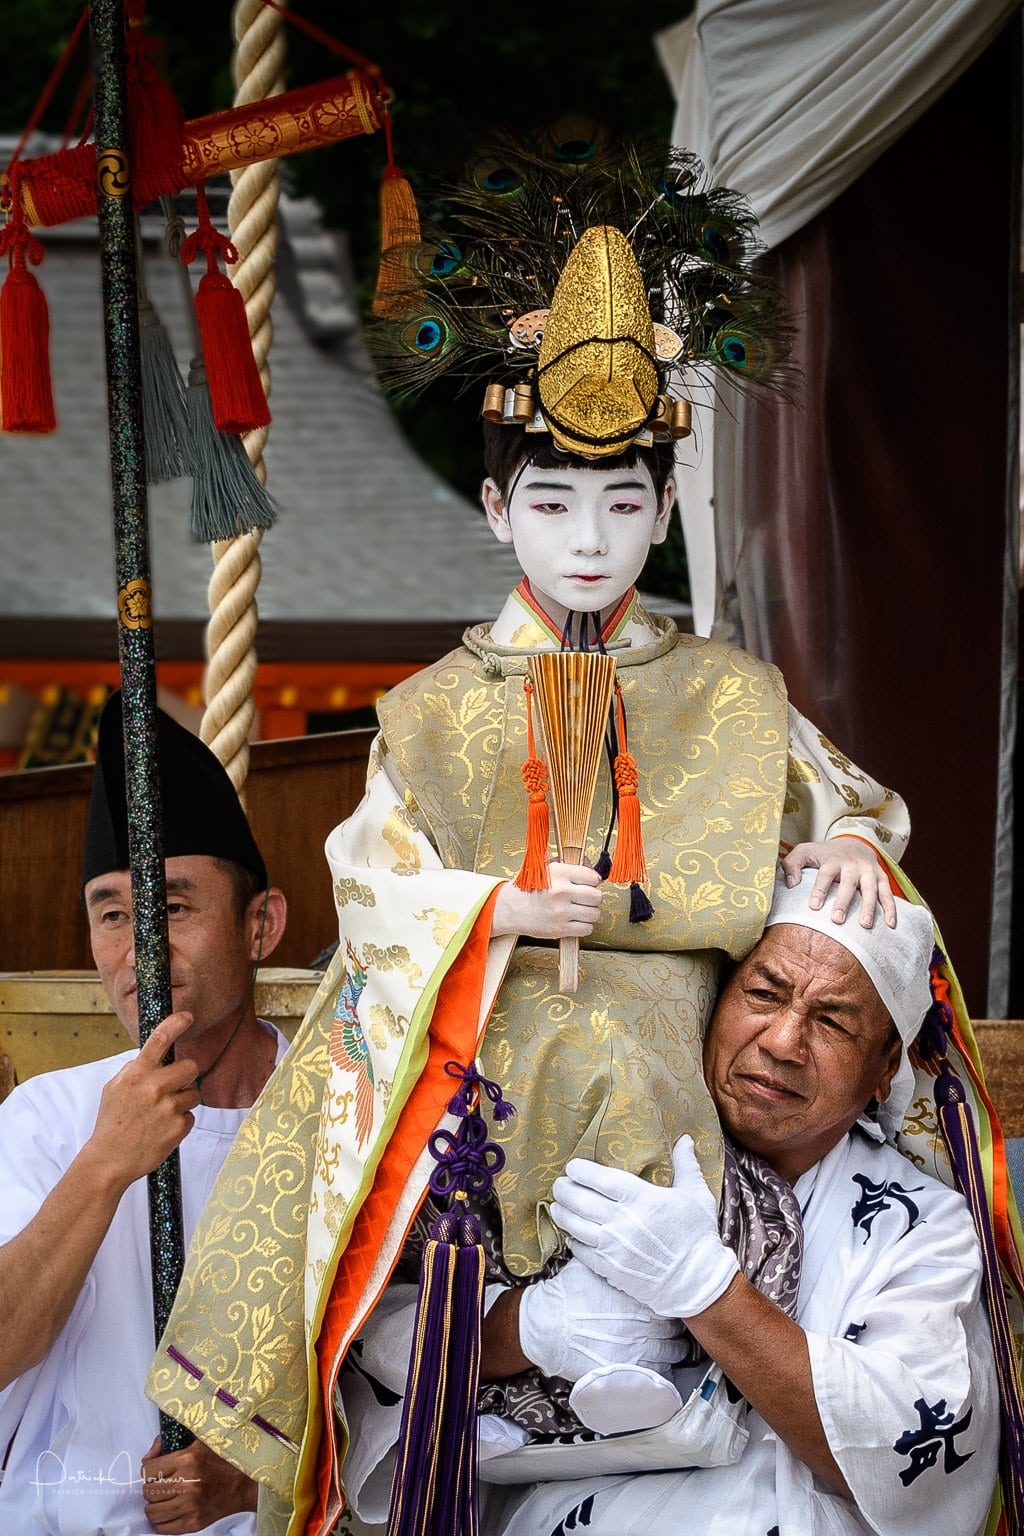 After the ritual, the Chigo or Celestial Messenger, becomes a high ranking lord and cannot touch the ground until July 17th